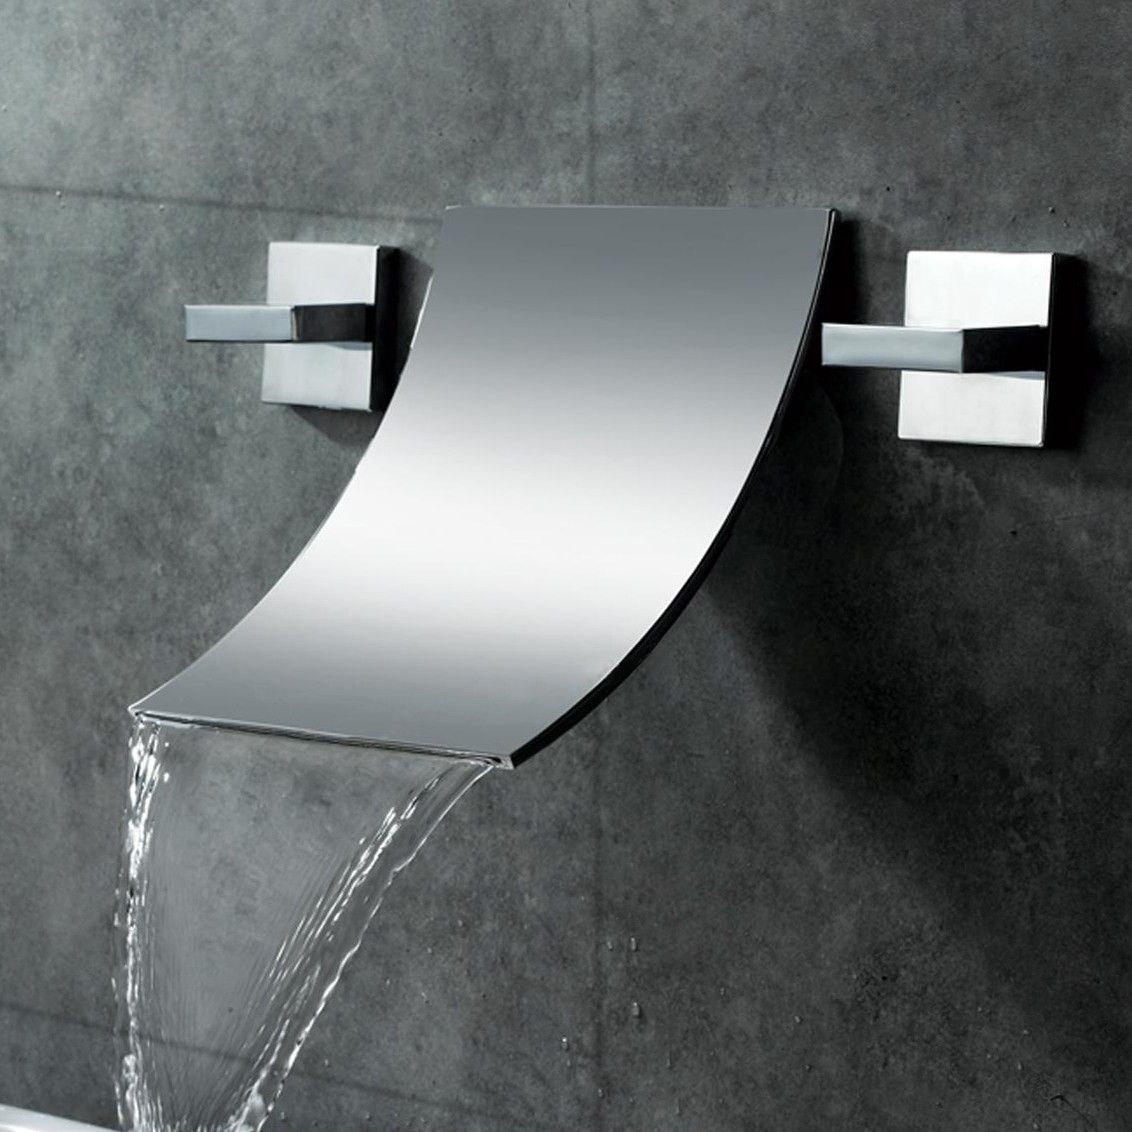 This waterfall wall-mounted bathroom sink faucet will brighten up ...